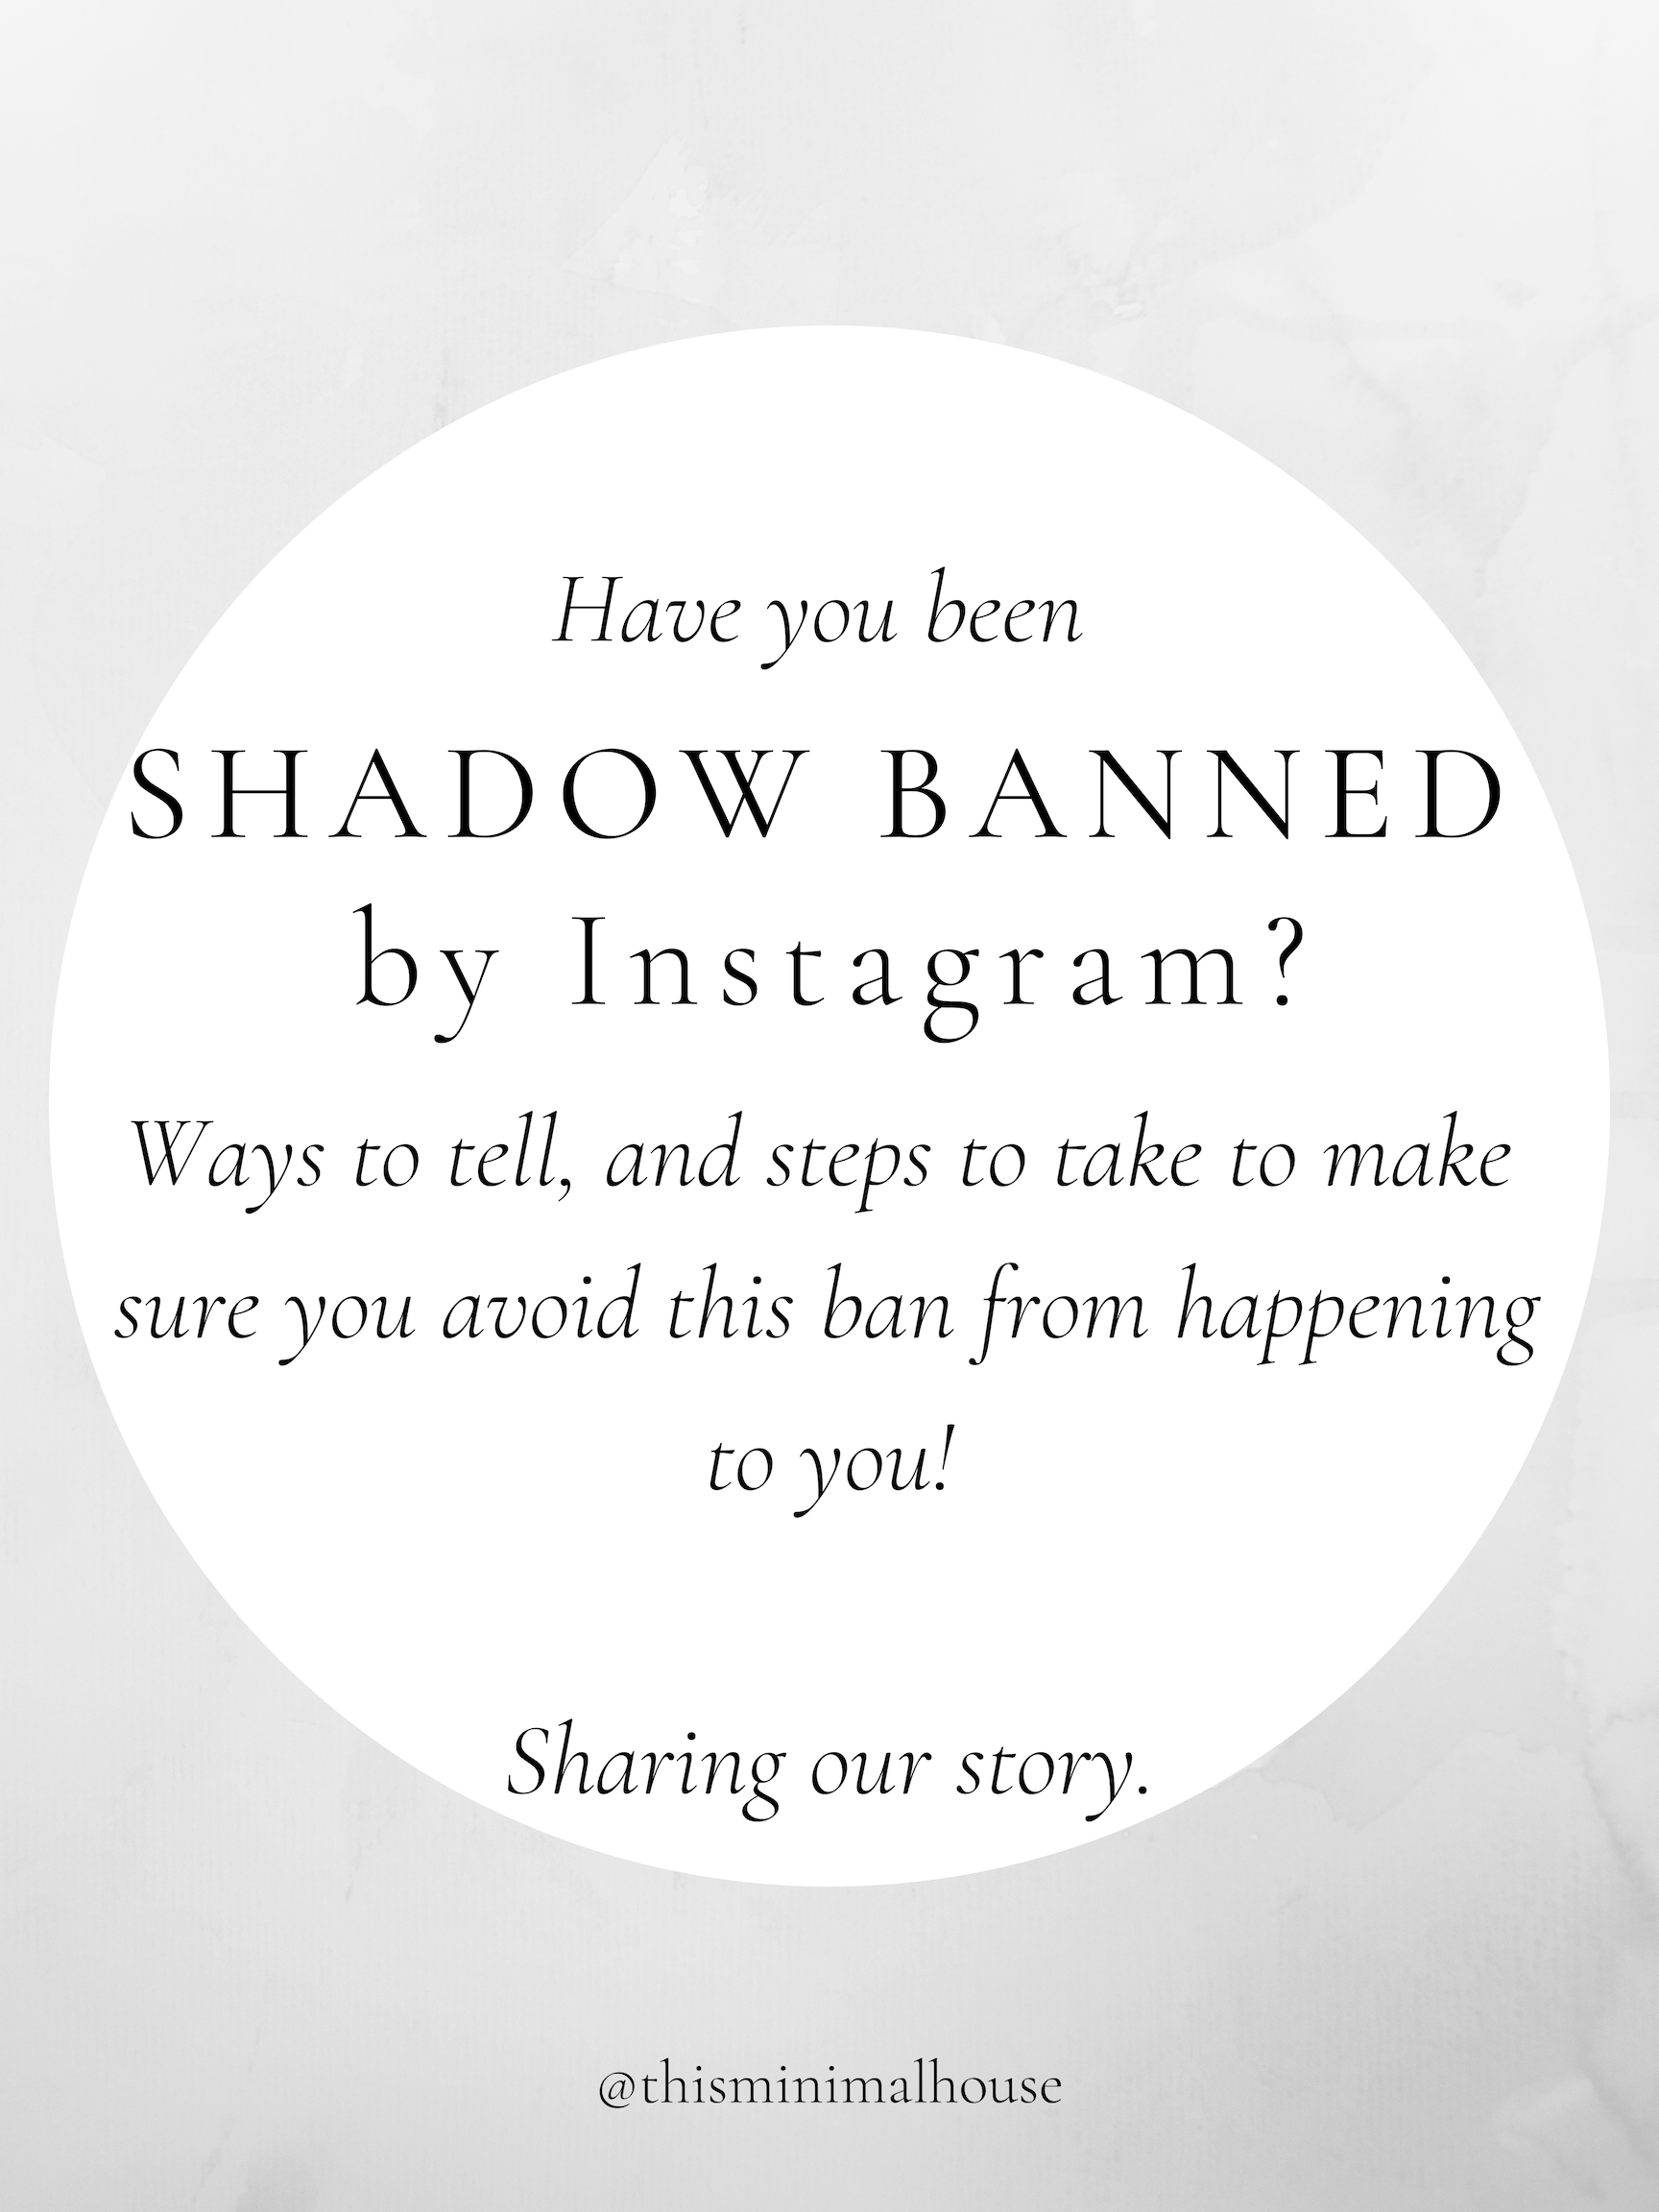 HOW TO AVOID GETTING SHADOW BANNED ON INSTAGRAM